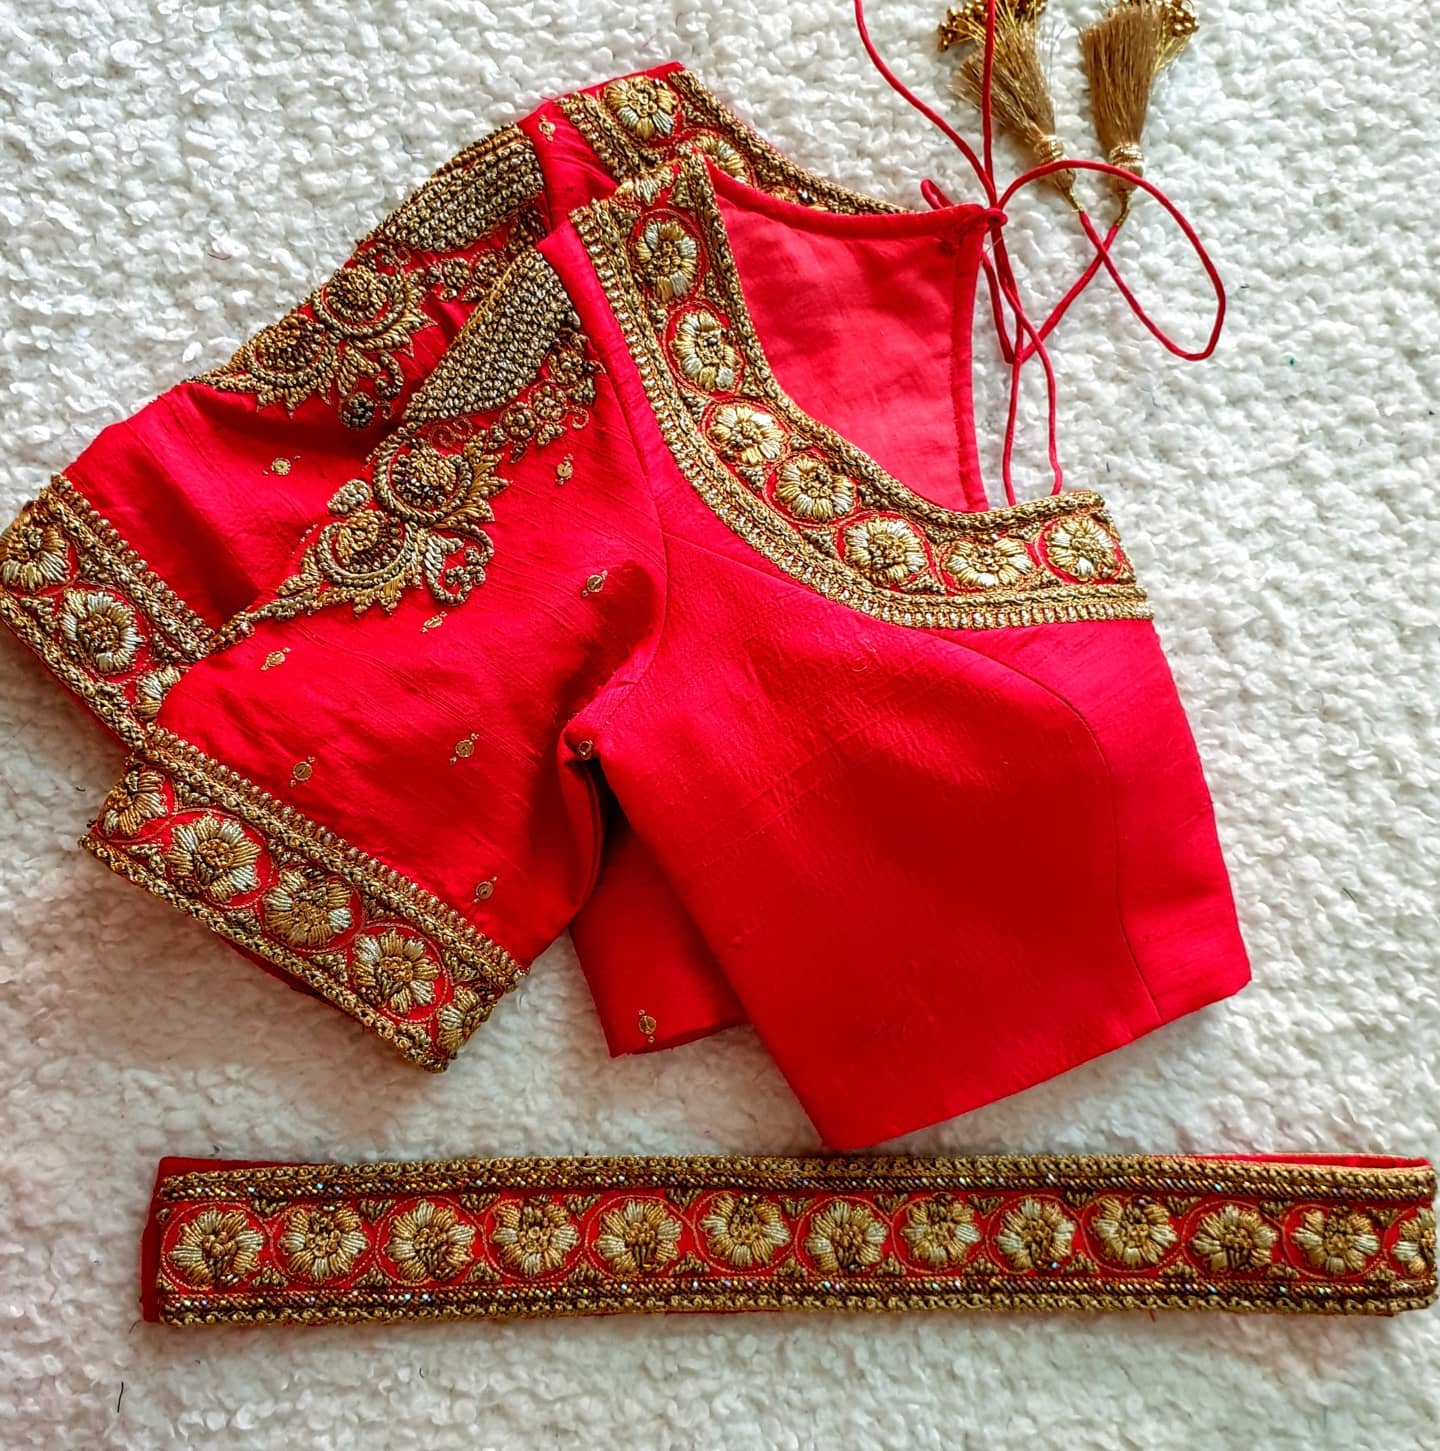 Red is the most powerful of all colors in Indian culture and holds many important meanings. Among them are fear and fire  wealth and power purity  fertility seduction love and beauty. Red is also representative of a certain time and place in one's personal life."